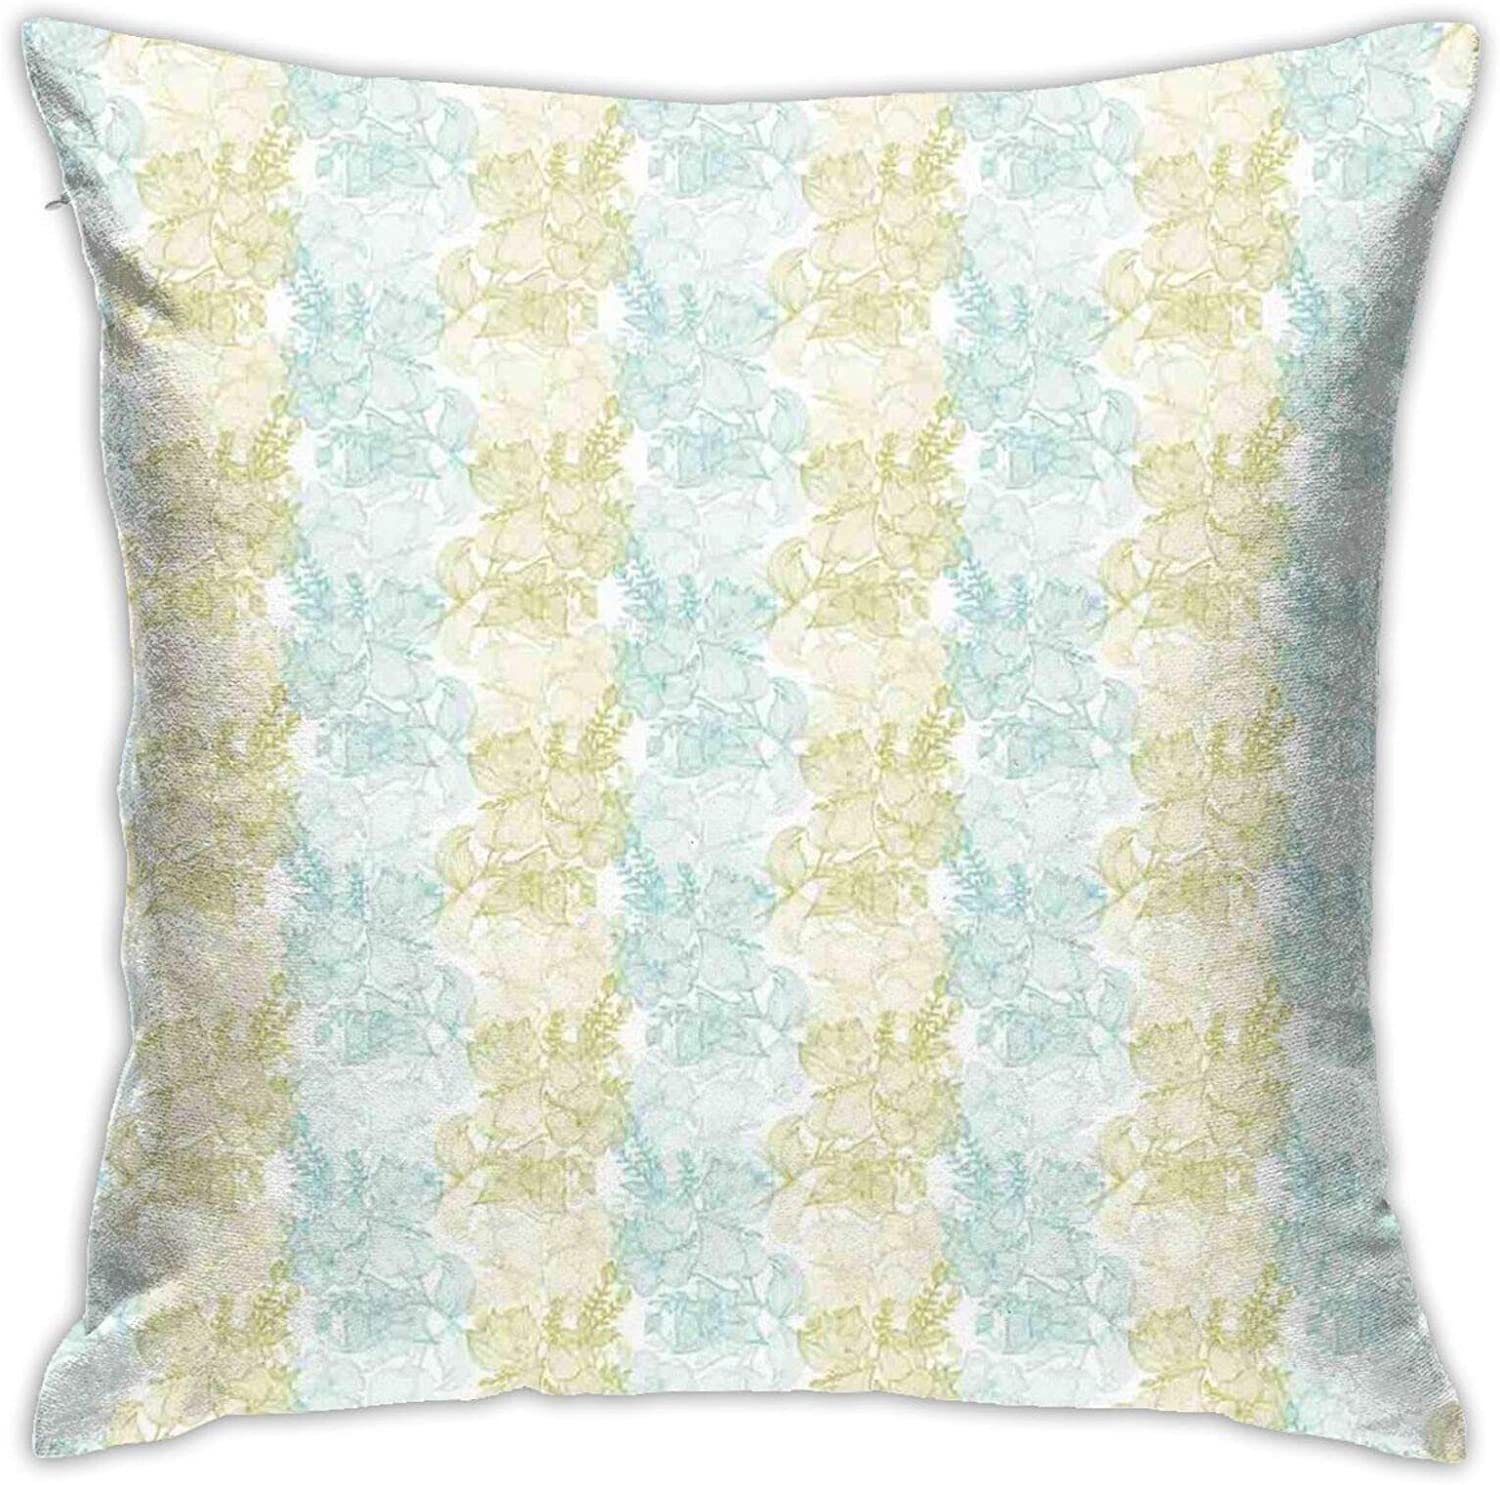 FDIN Line Art Green and Blue Soft Pastel Flowers Motif English Garden Printed Cushion Cover Throw Pillow Cover, Home Sofa Bed Chair Cushion, 18 inches x 18 inches